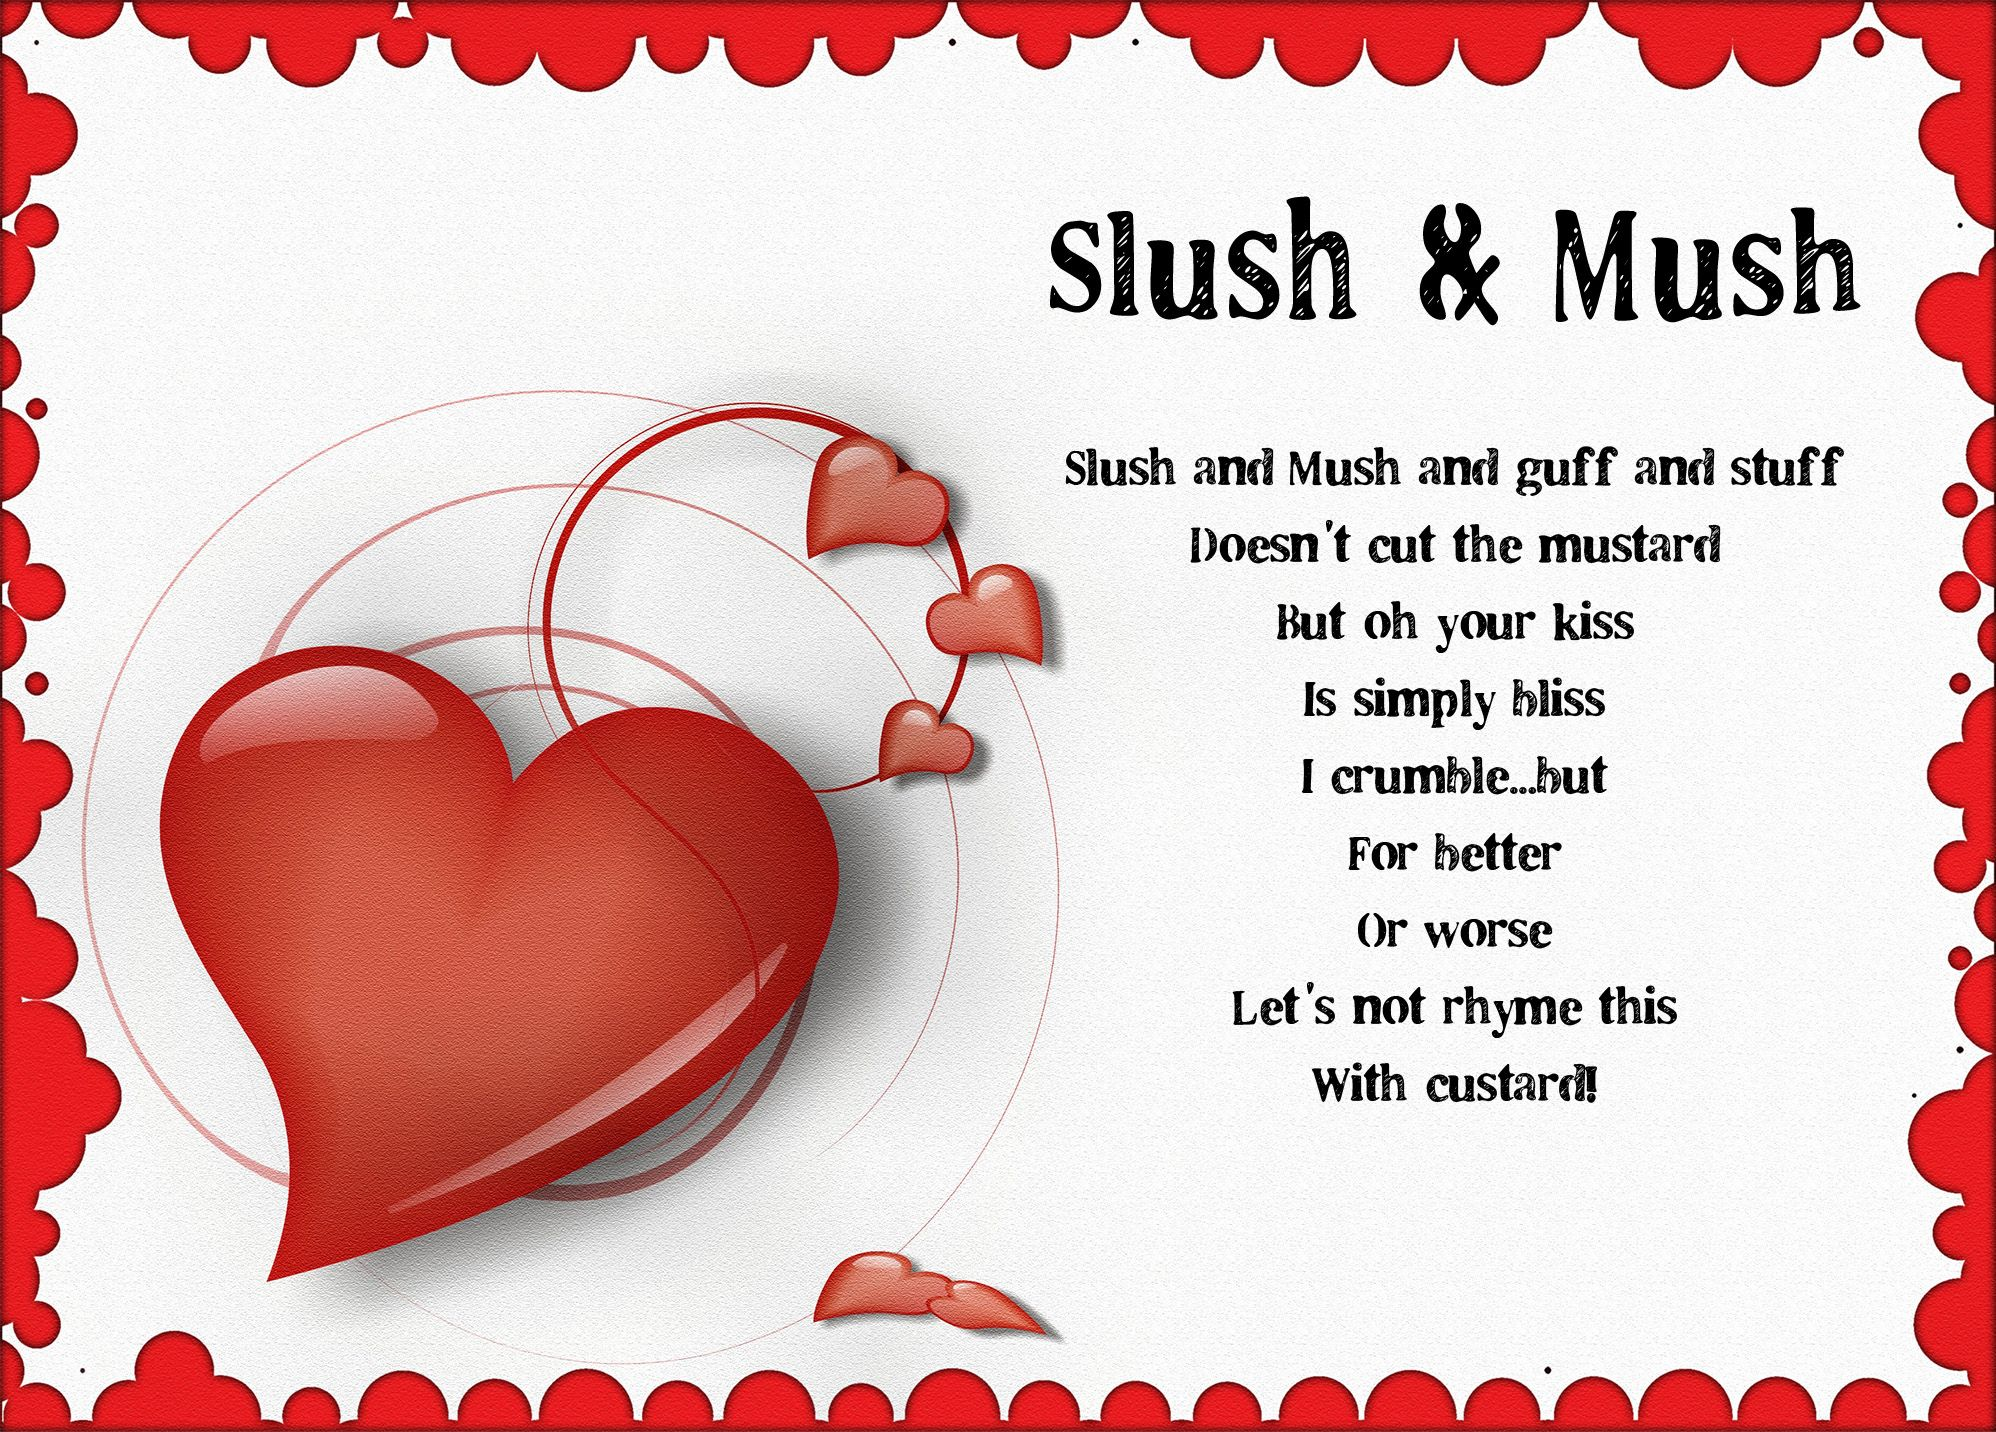 Slush and mush